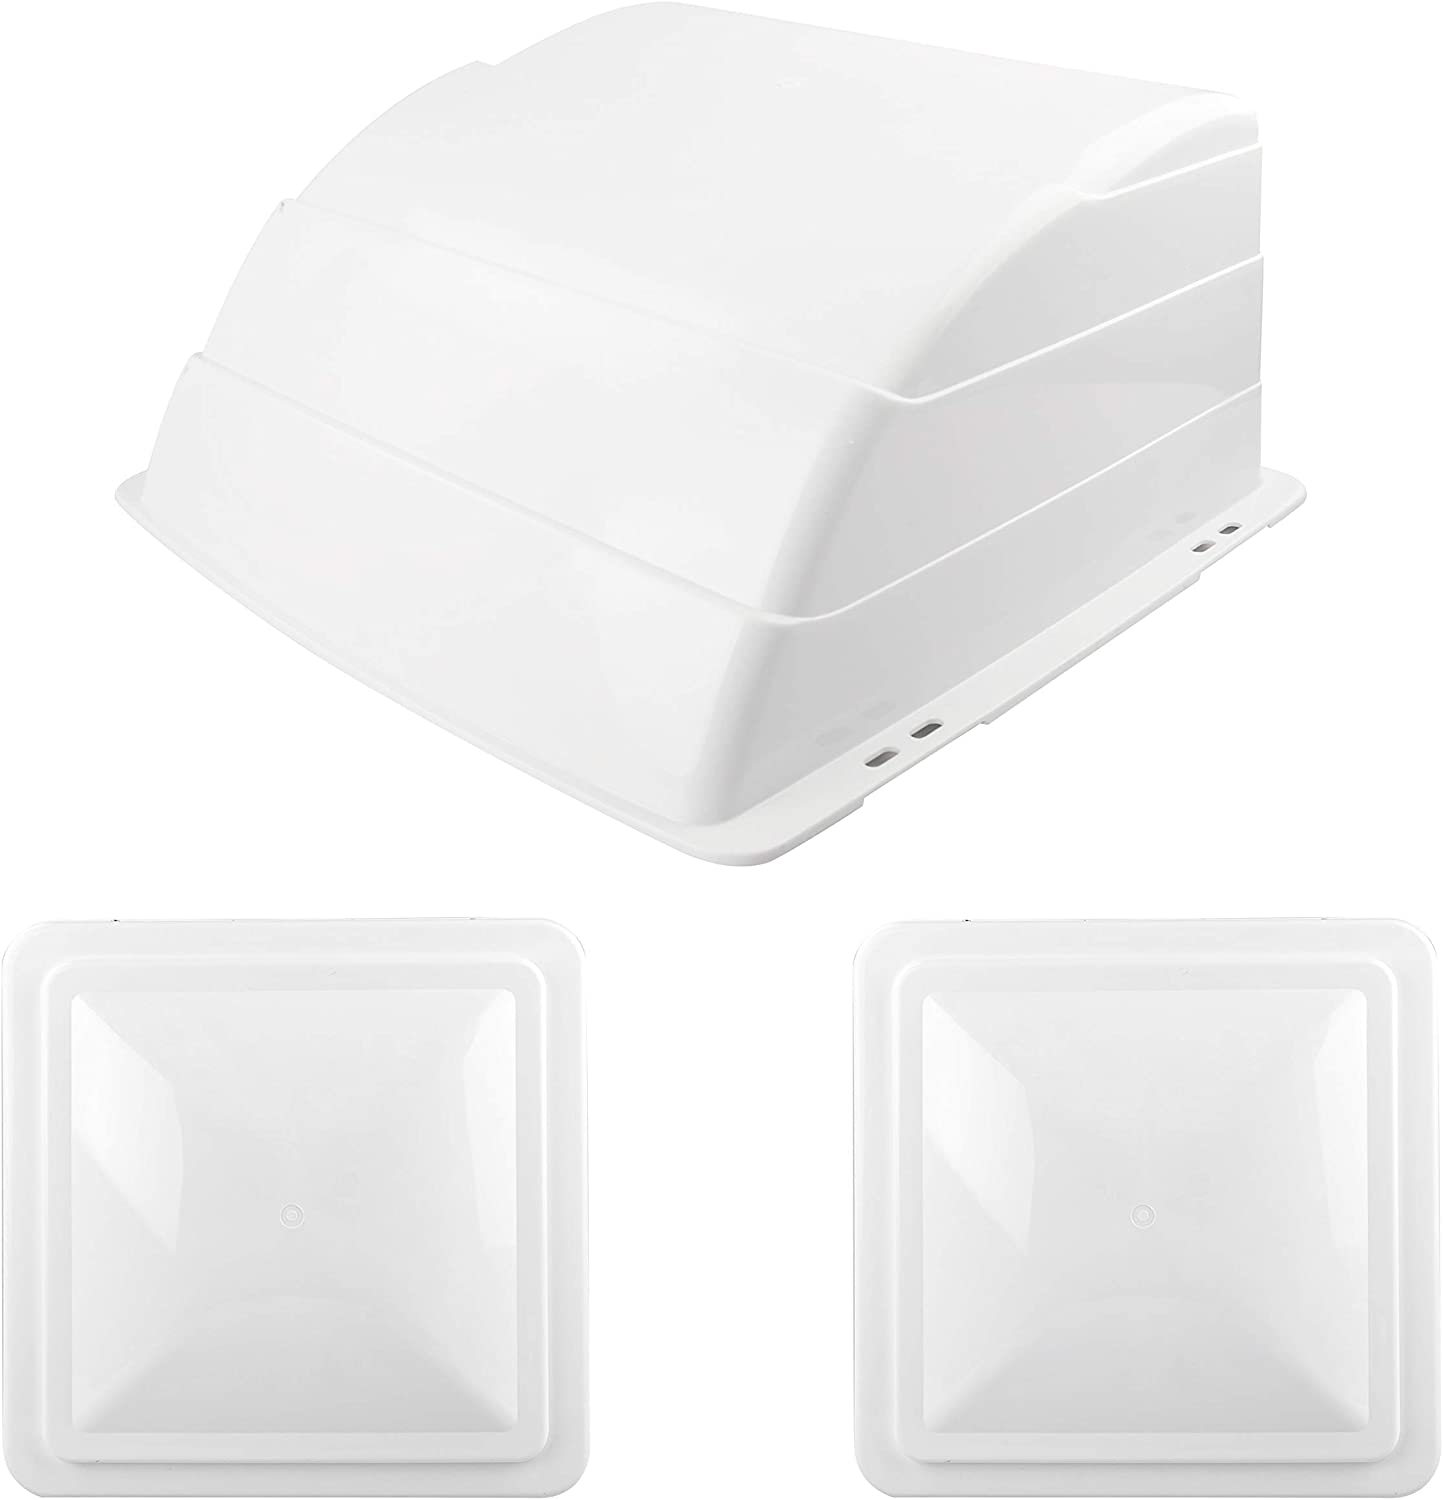 RVGUARD 3 Pack RV Roof Vent Cover, Replacement Vent Lid for Camper Motorhome Trailer, White